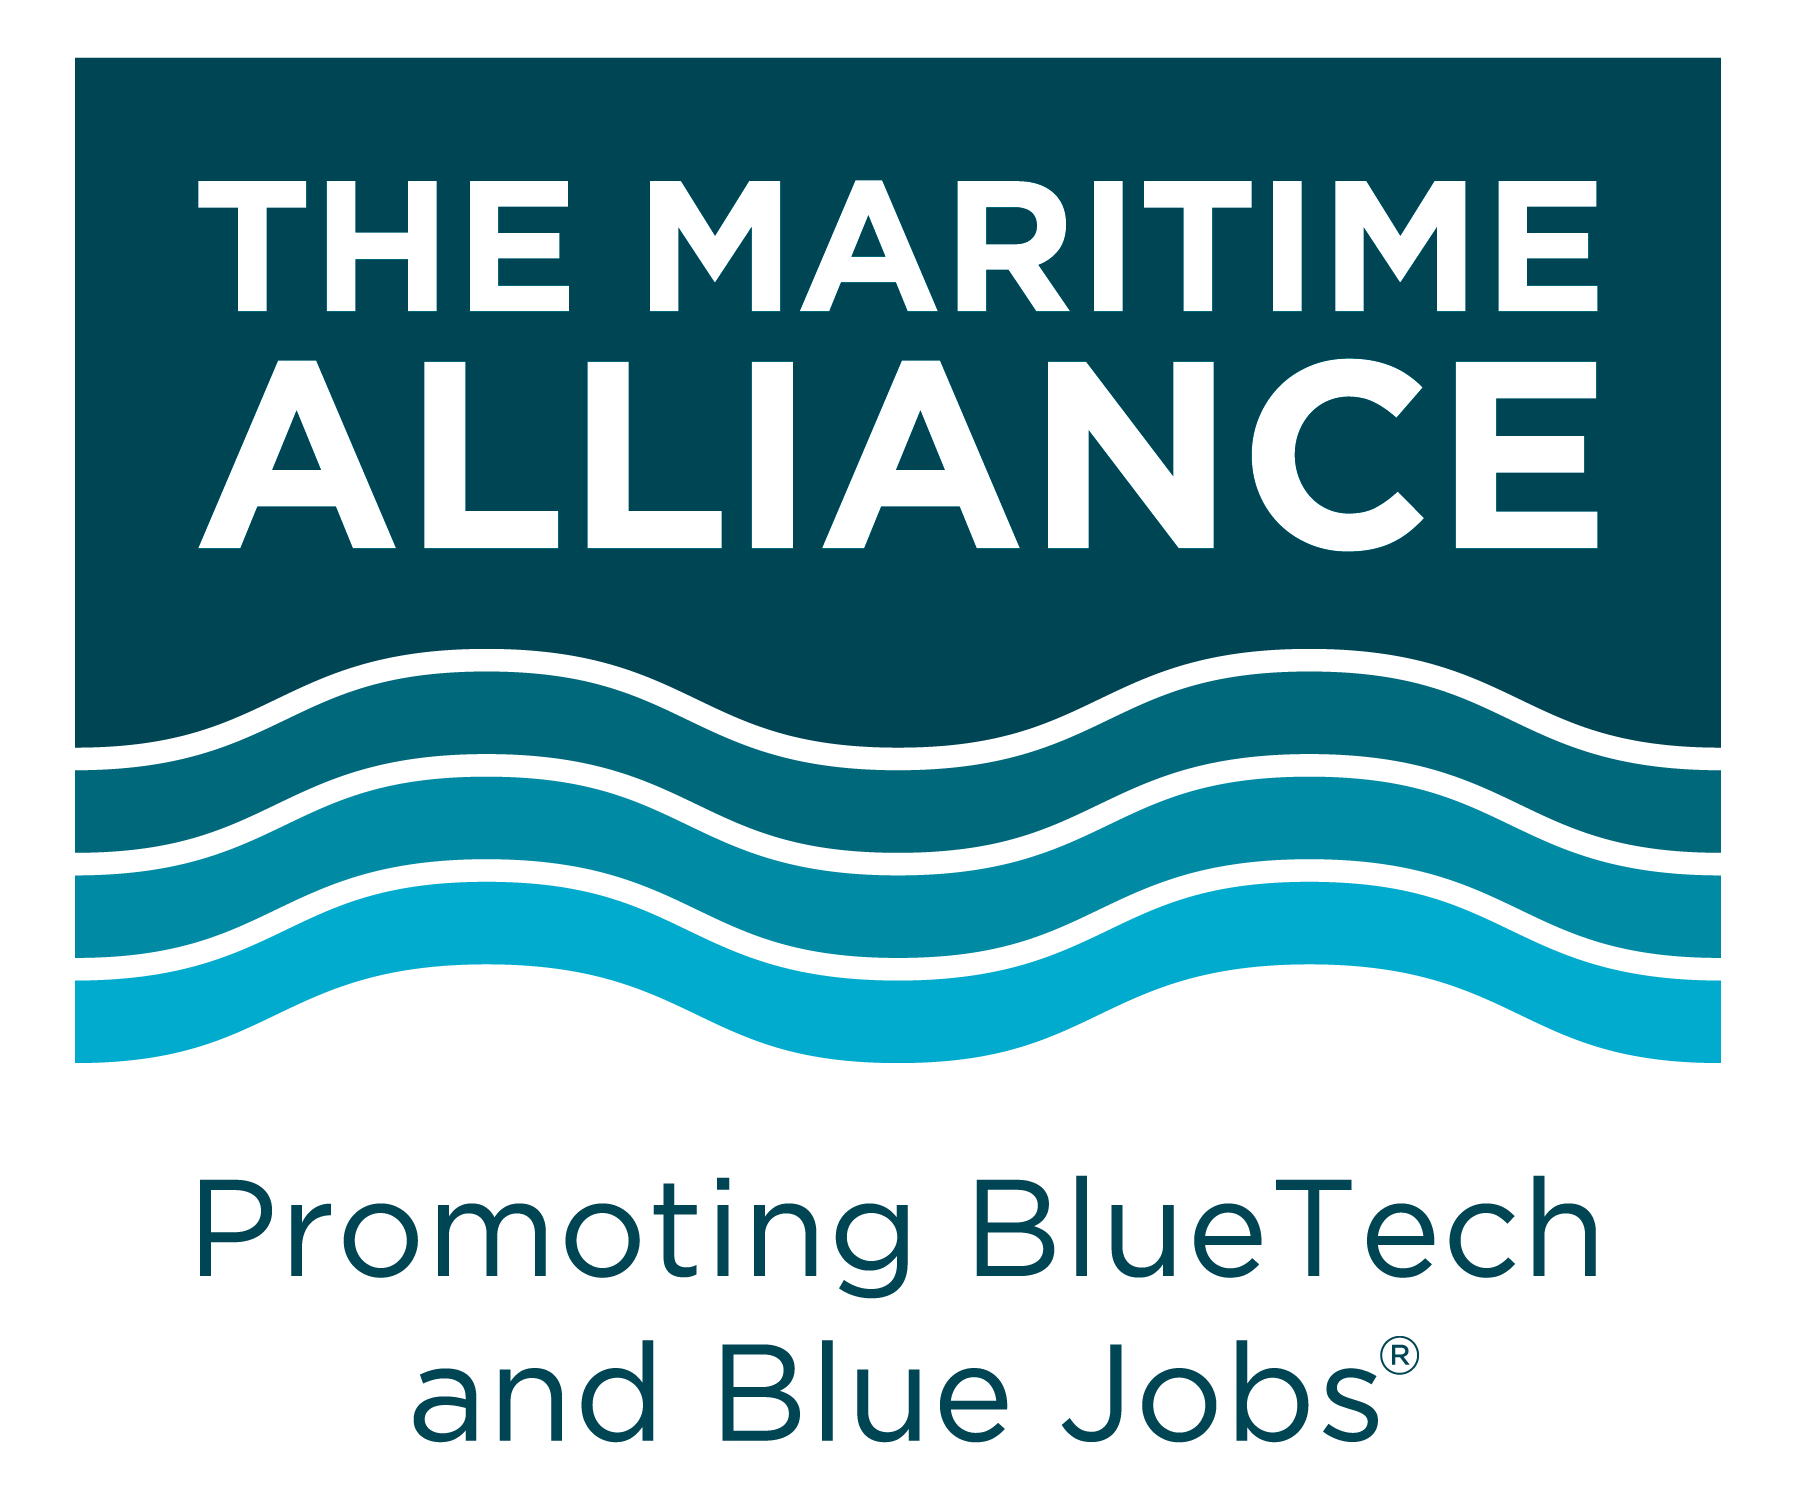 The Maritime Alliance Logo.  Promoting BlueTech and BlueJobs